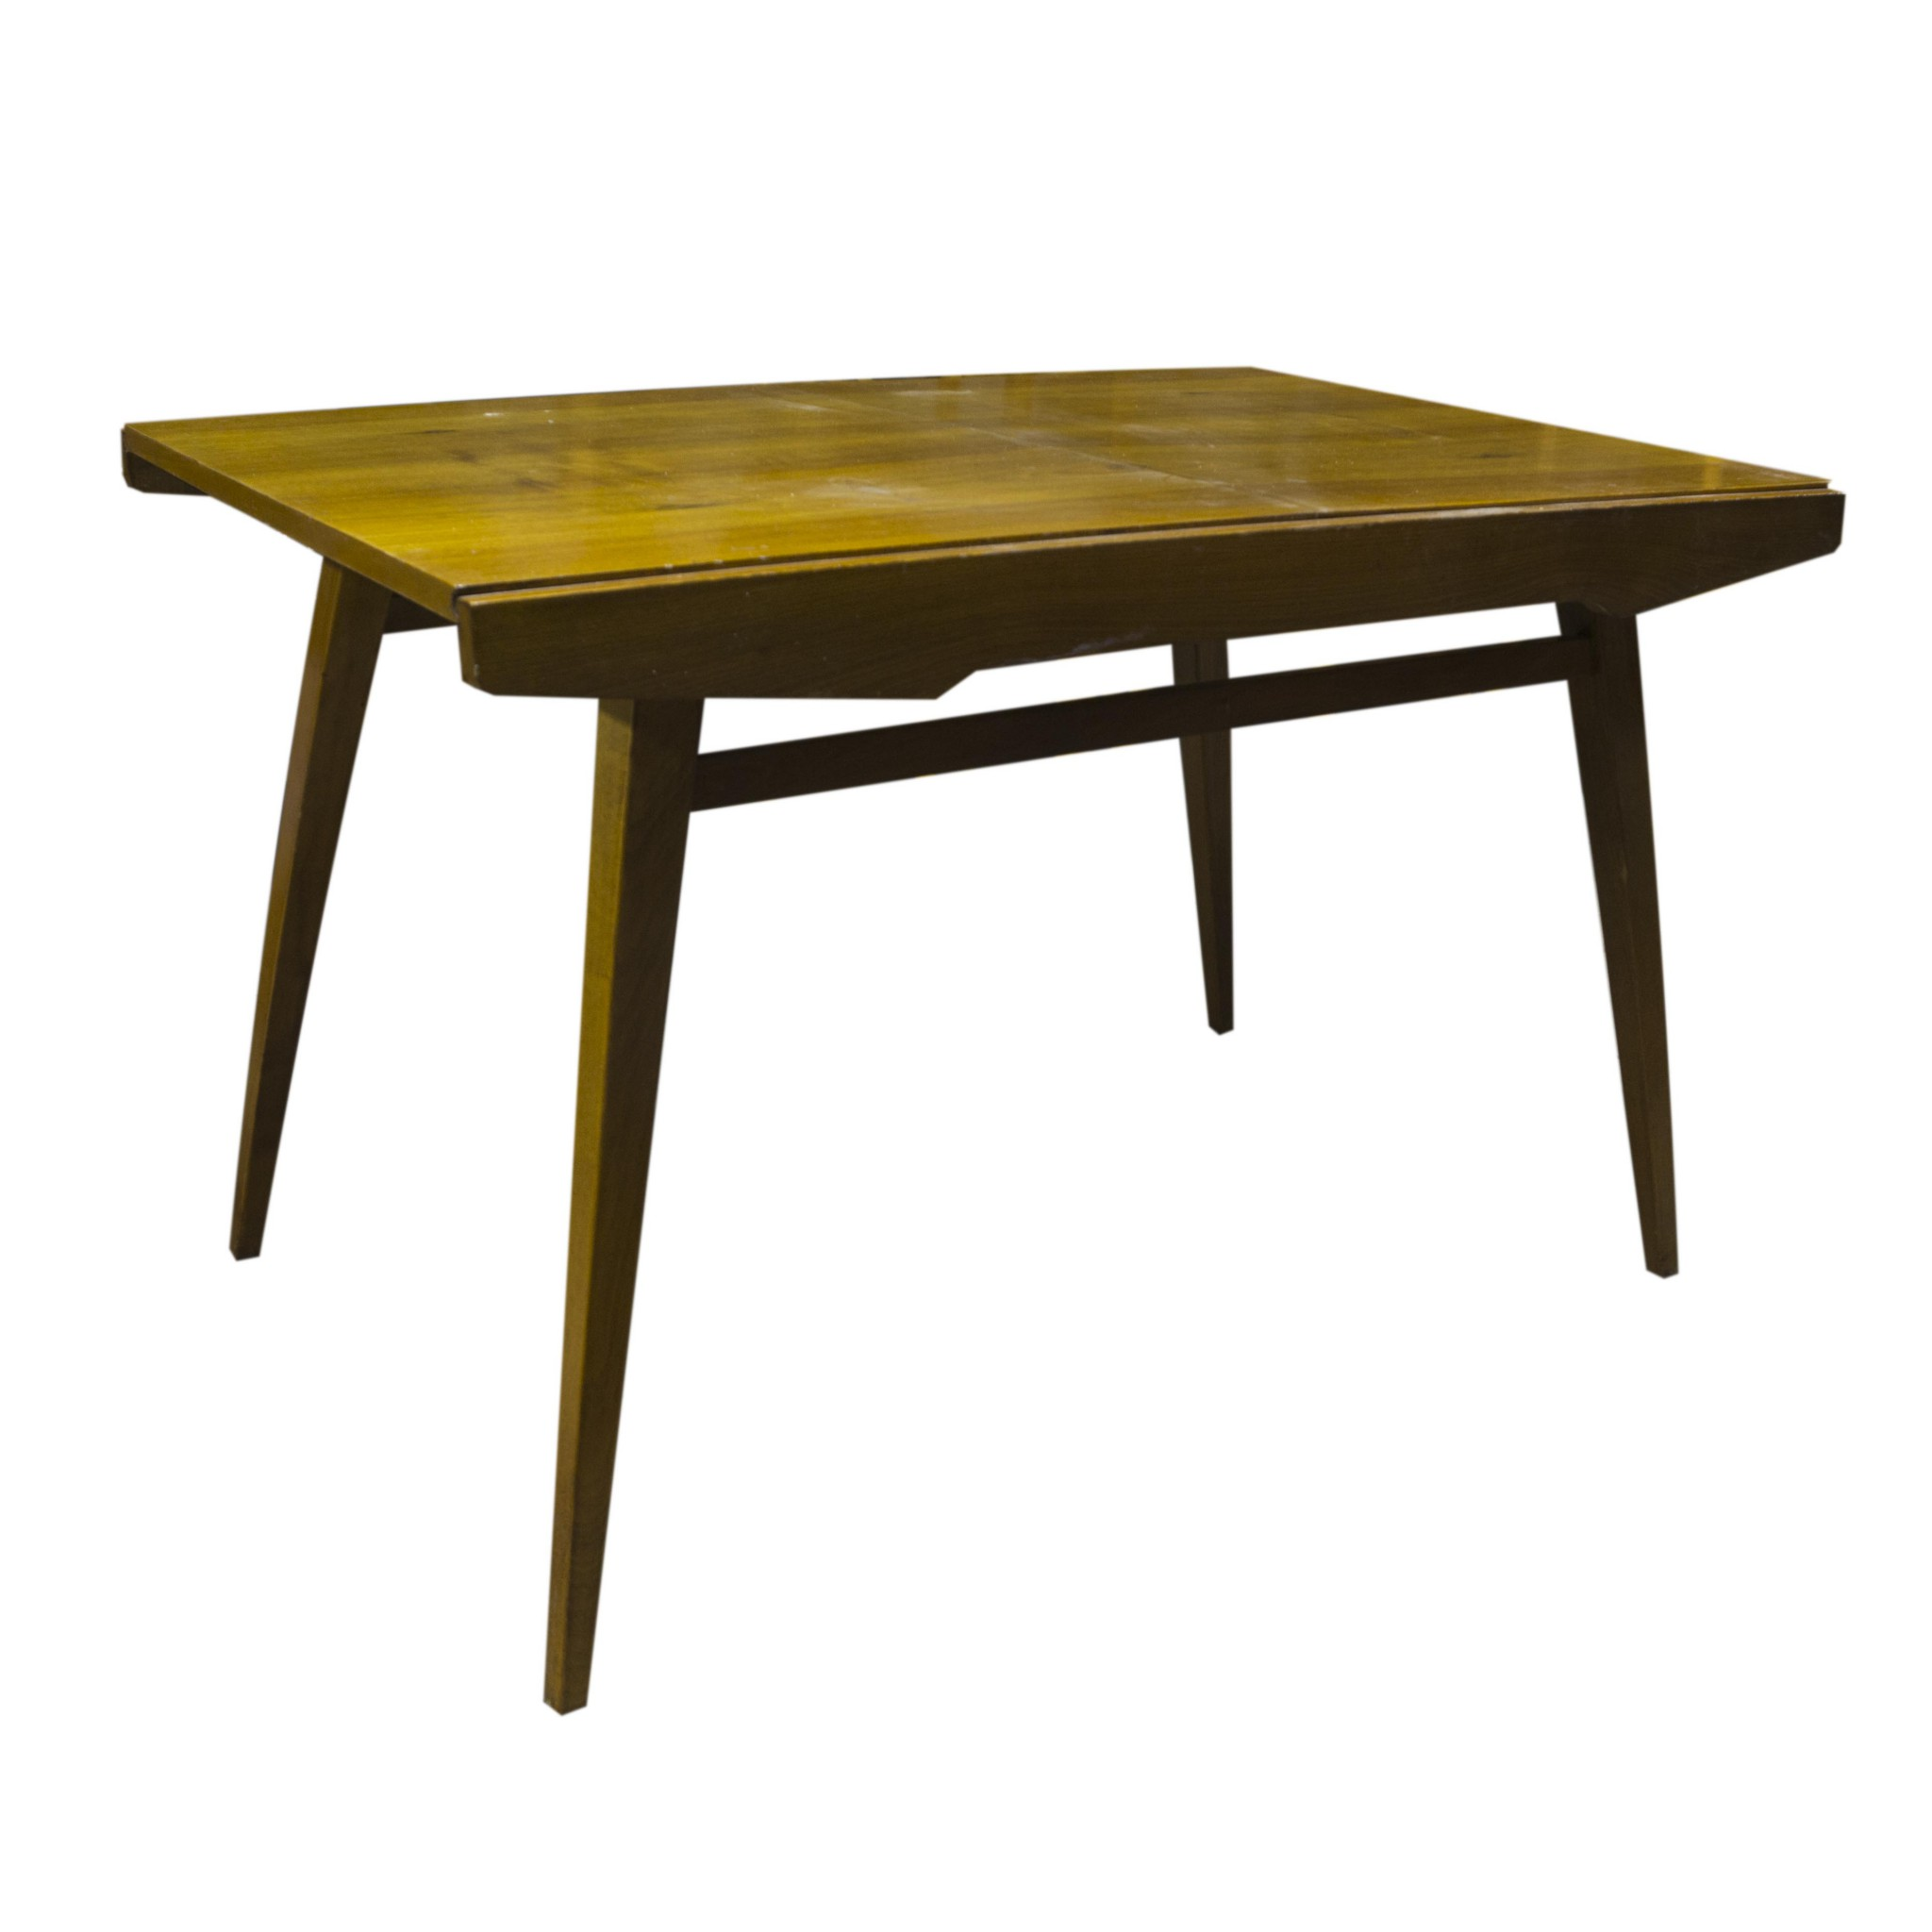 Vintage expandable dining table 1960180s Middle Europe  : DSC07858 from your20th.com size 2048 x 2048 jpeg 178kB